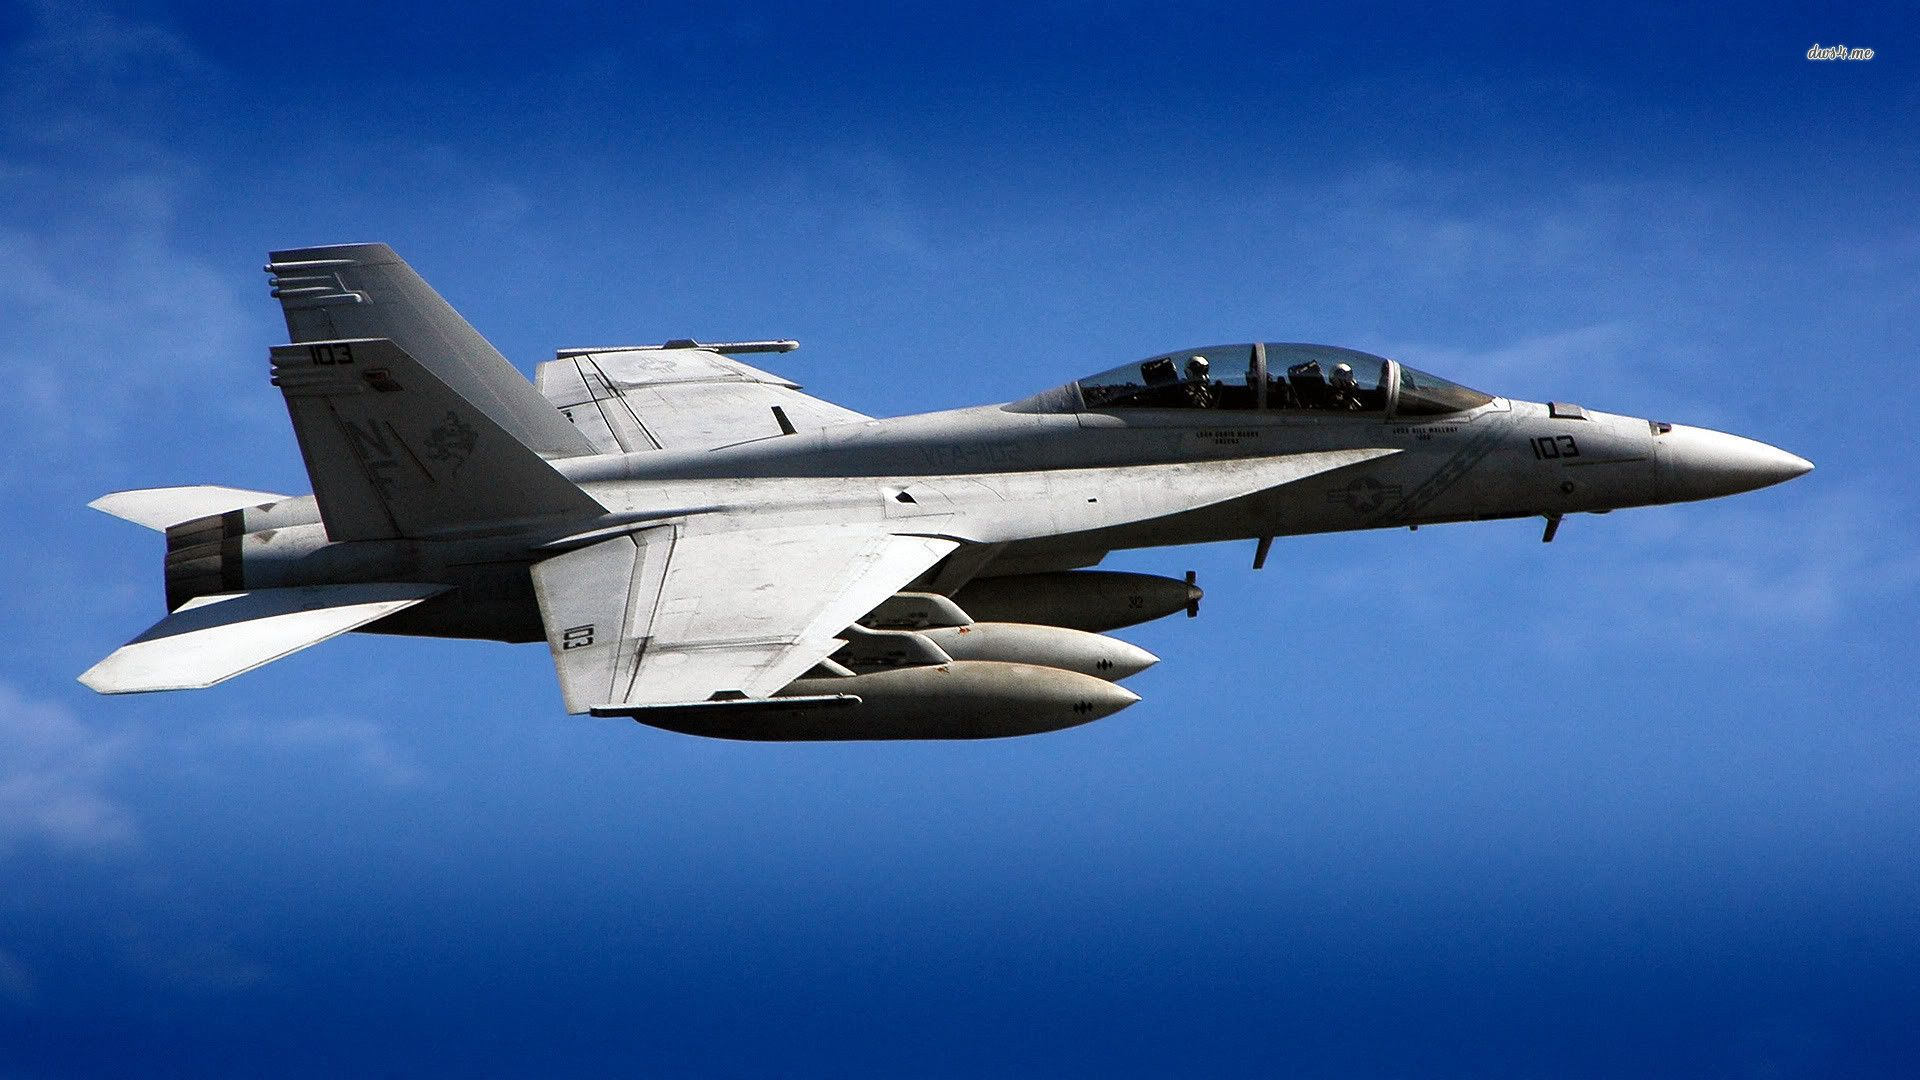 F 18 super hornet hd clipart.